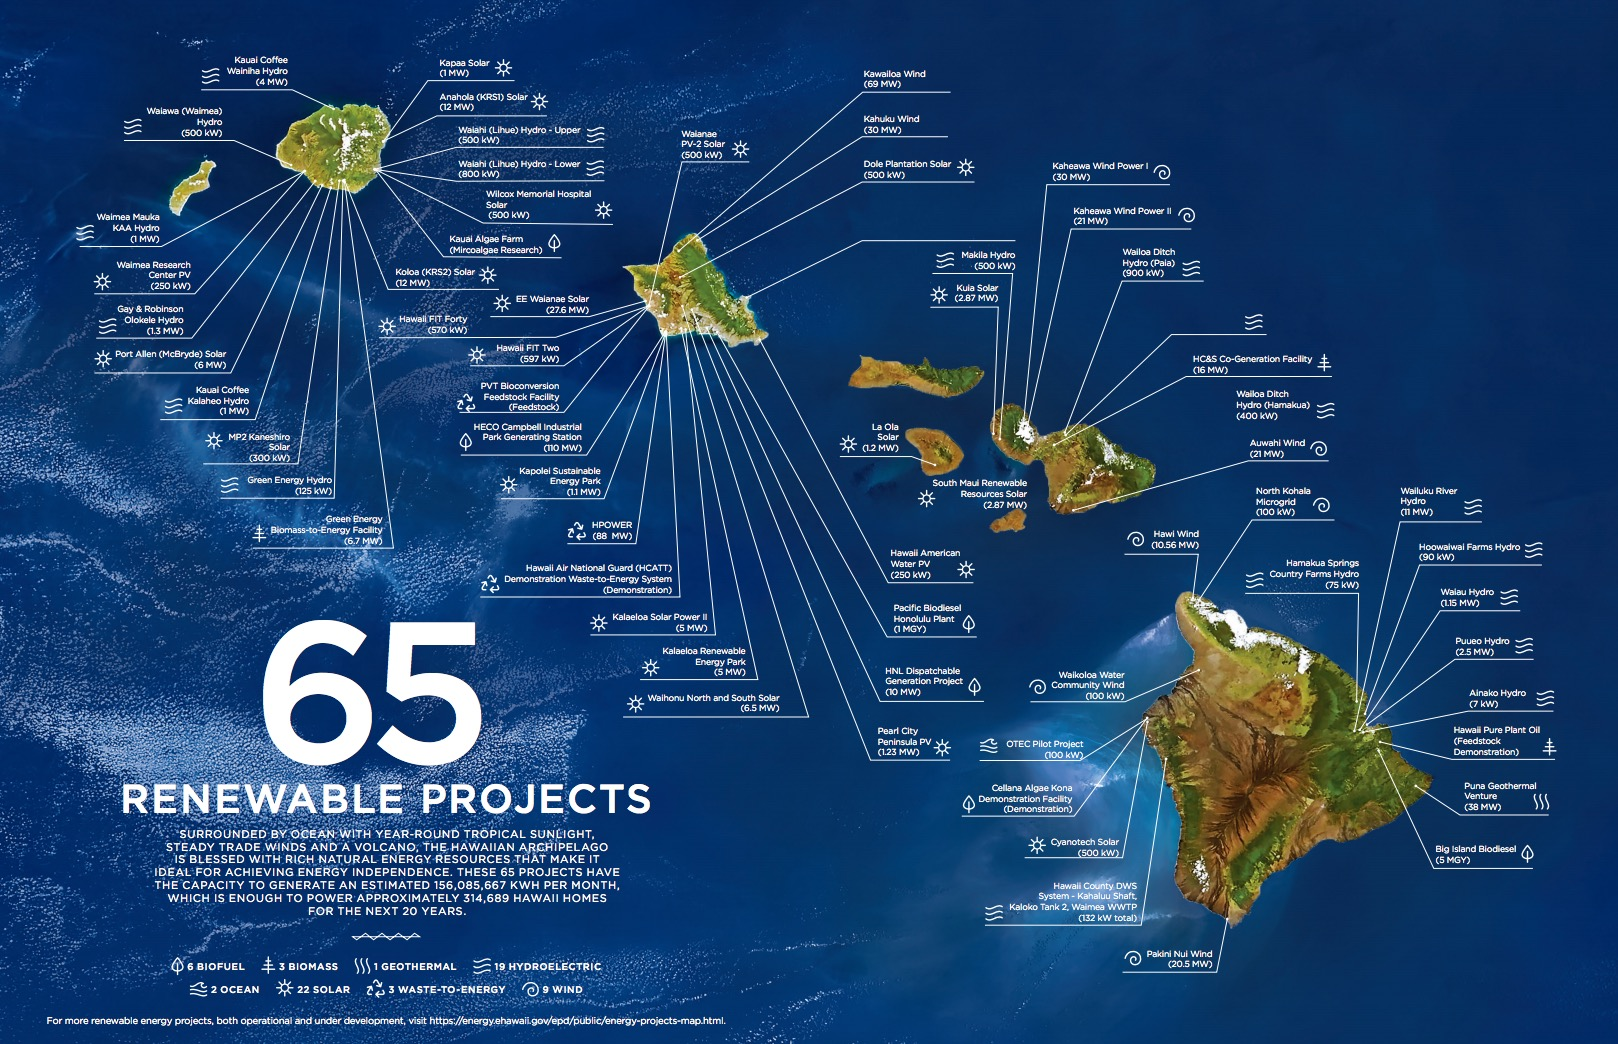 65 renewable energy projects in Hawaii